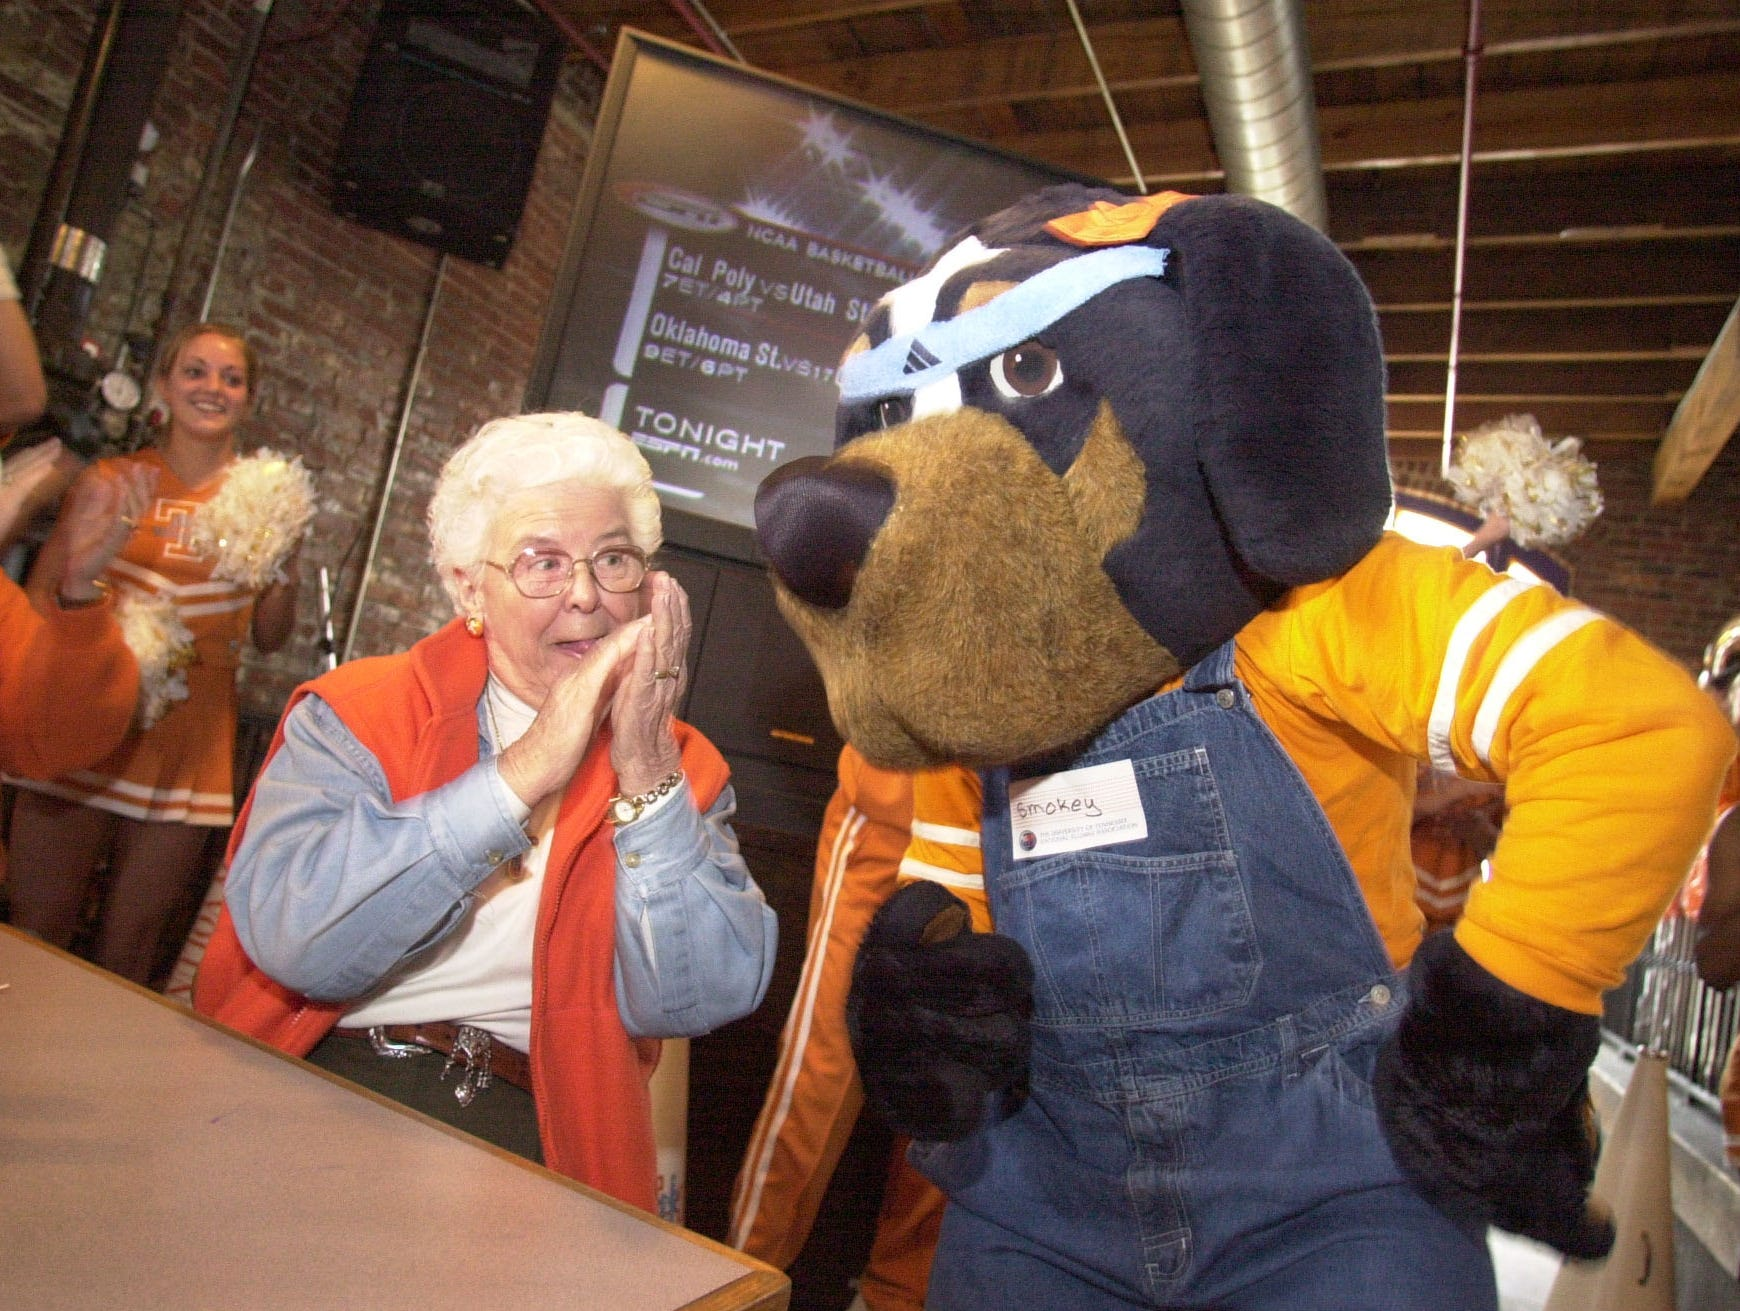 0303fans.2.CC --sports--Longtime Lady Vol fan Franicis Brett of Memphis cheers with the mascot Smokey on Saturday during a pep rally at High Point Pinch Bar and Grill in Memphis.